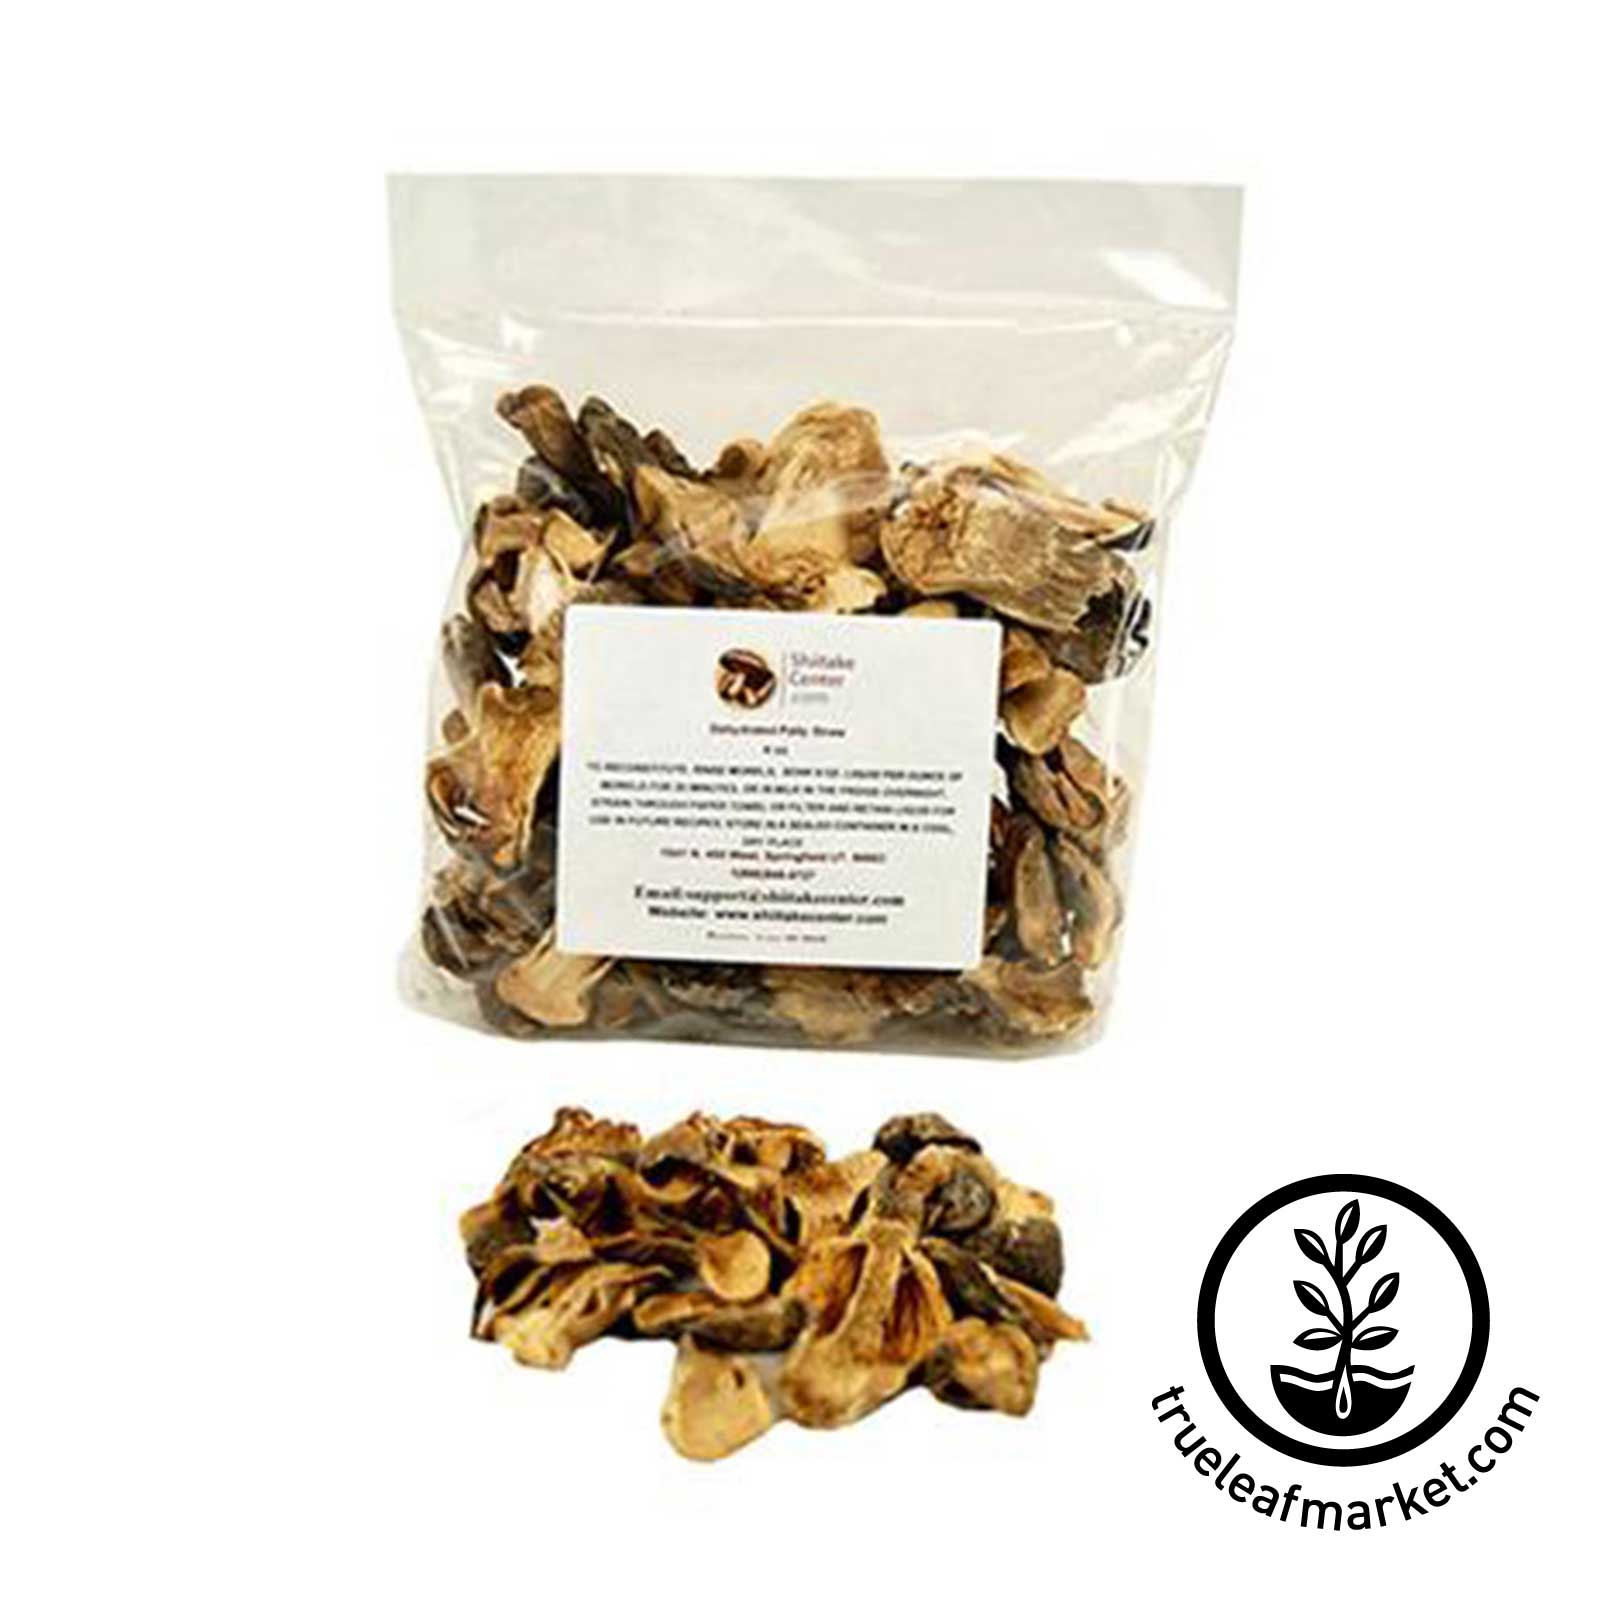 Dehydrated Paddy Straw Mushrooms mushroom, dried, dehydrated, patty straw, volvariella, volvacea, paddy straw